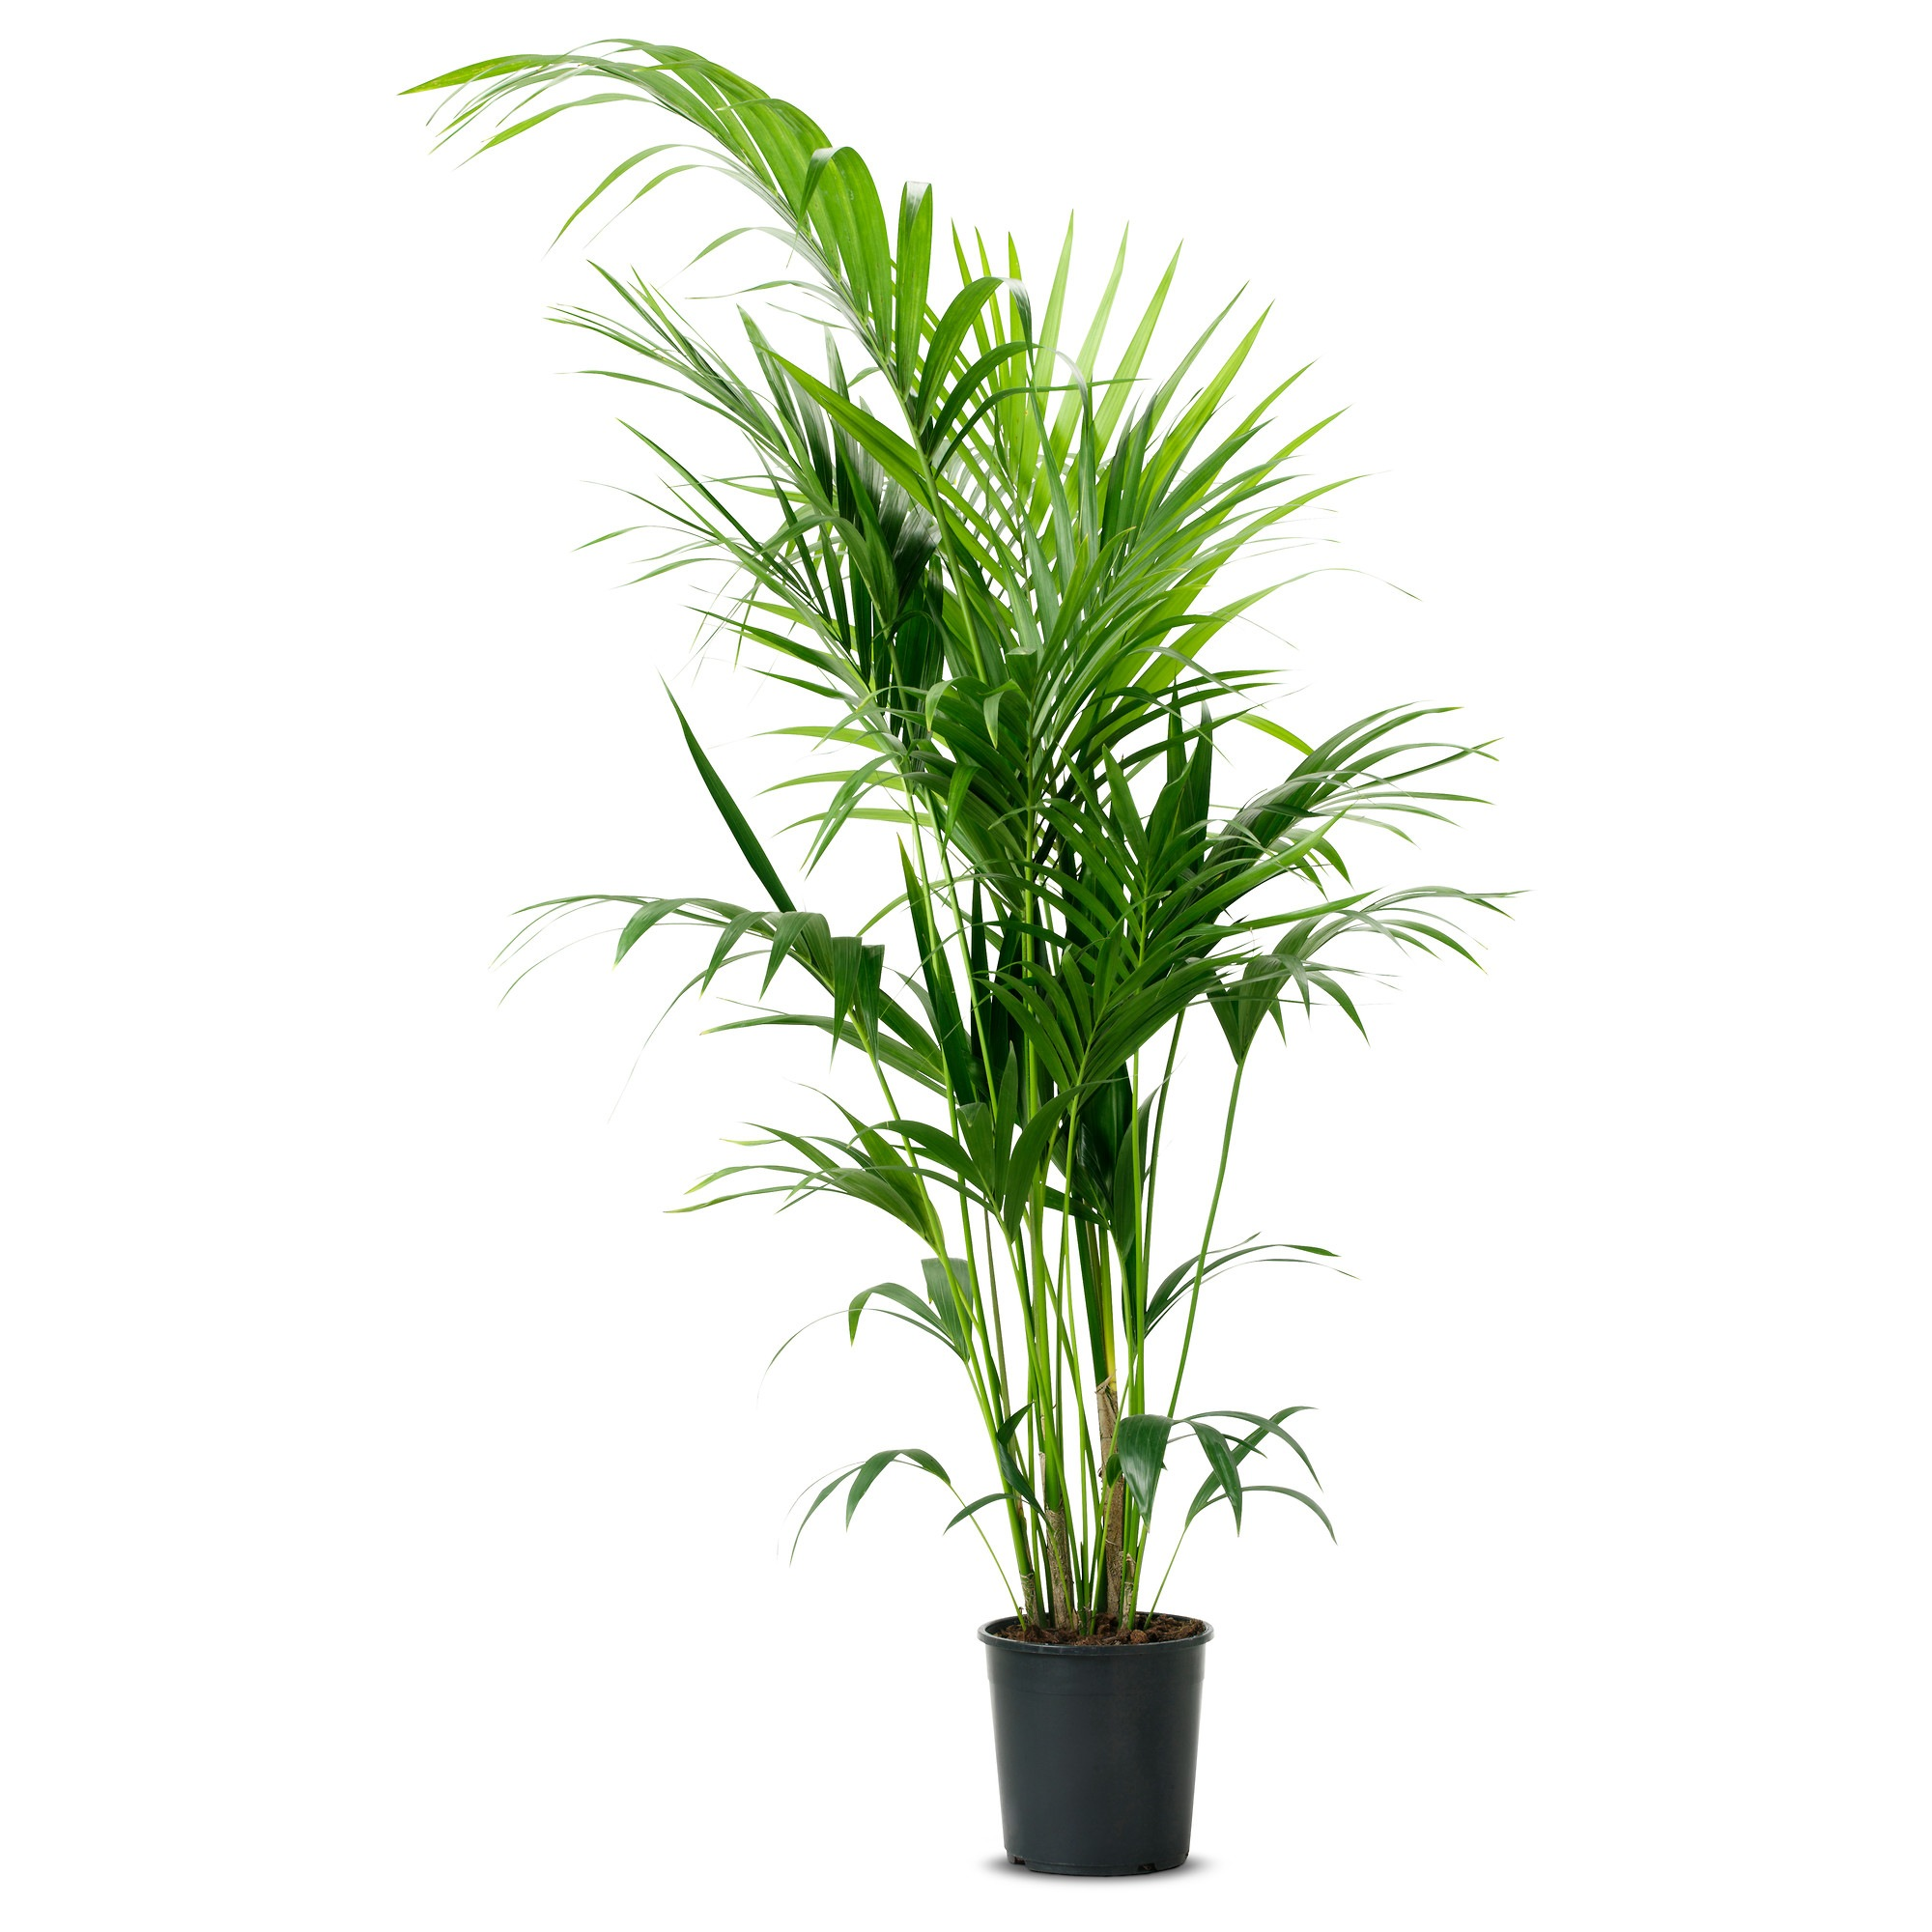 Artificial Chrysalidocarpus Lutescens Potted Plant Chrysalidocarpus Lutescens Areca Palm